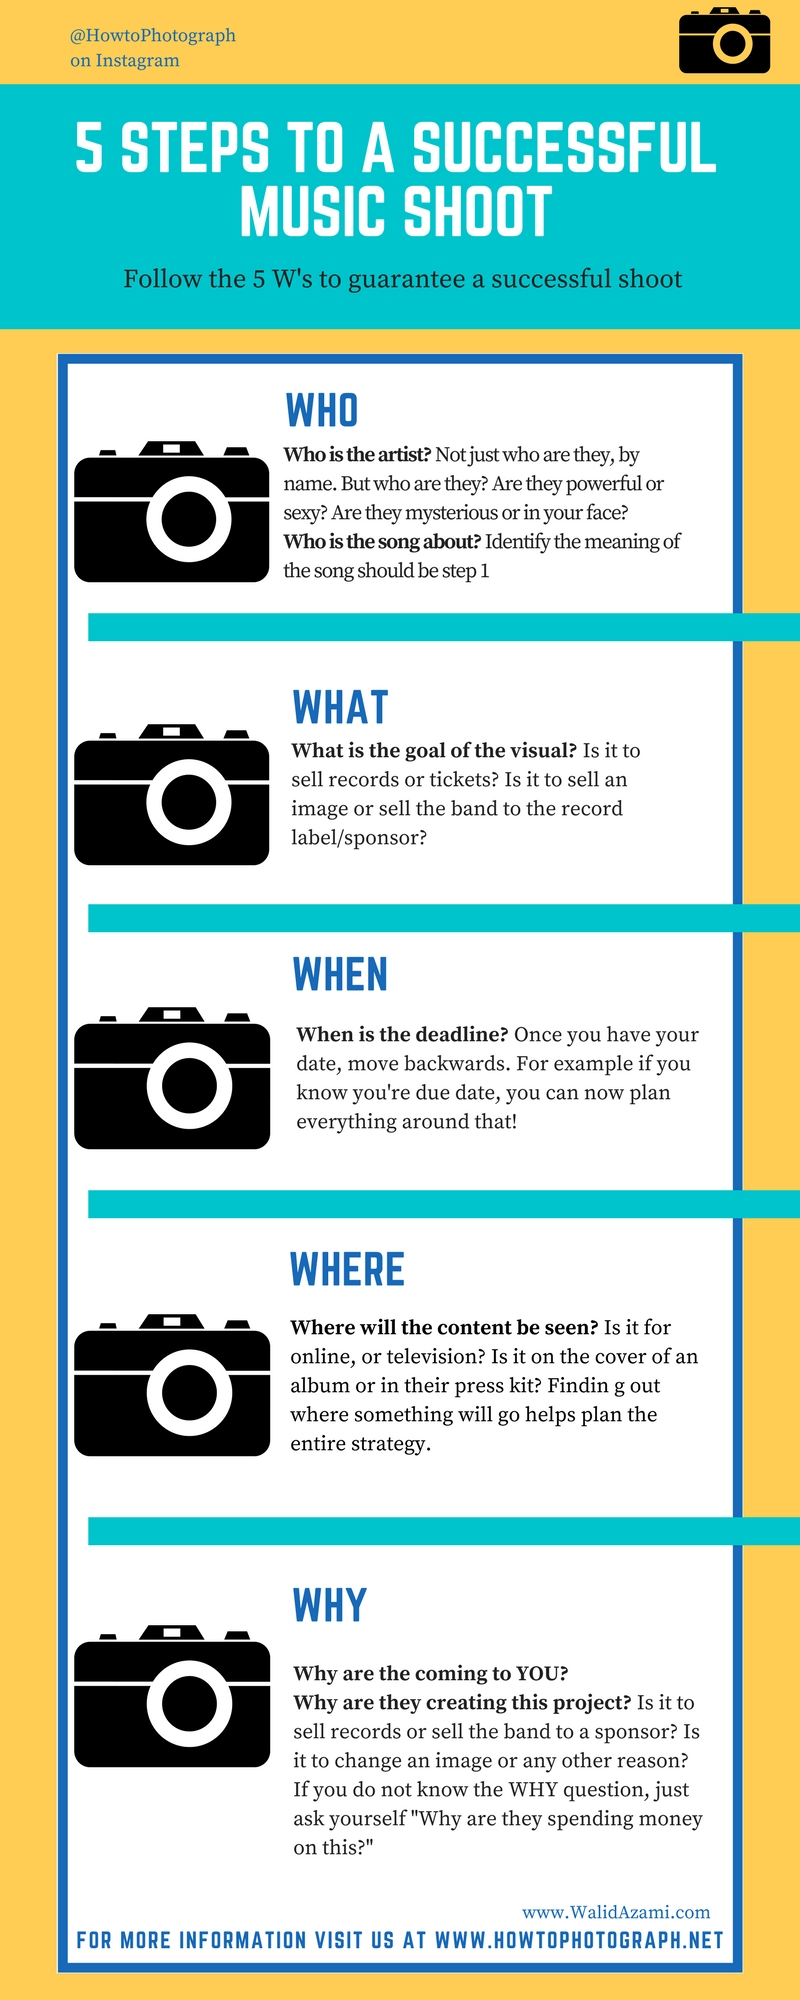 5 Steps to successful photo shoot